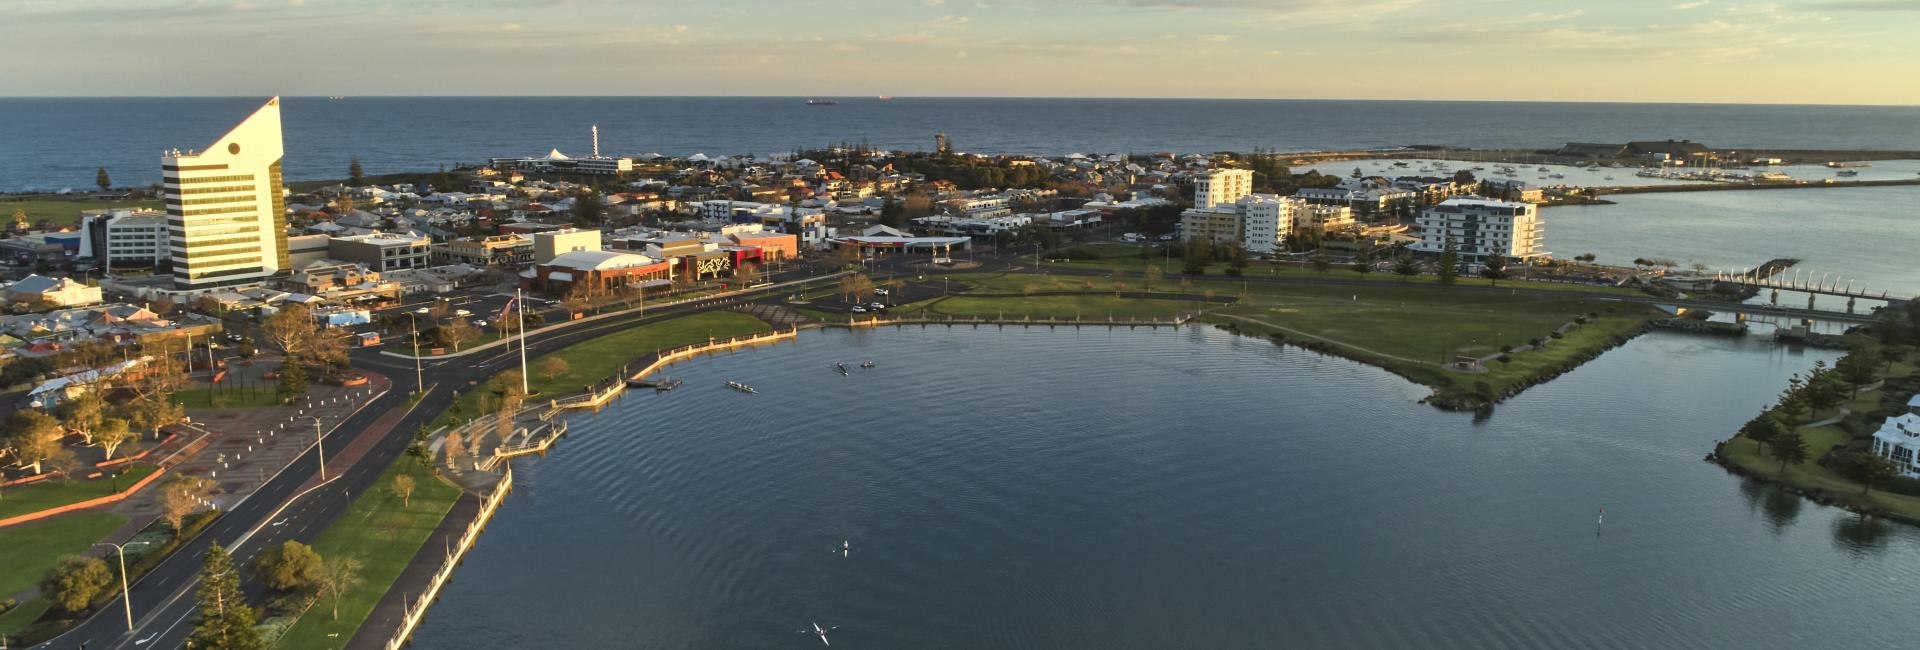 a drone image shows Bunbury city sitting on a peninsula with water on each side